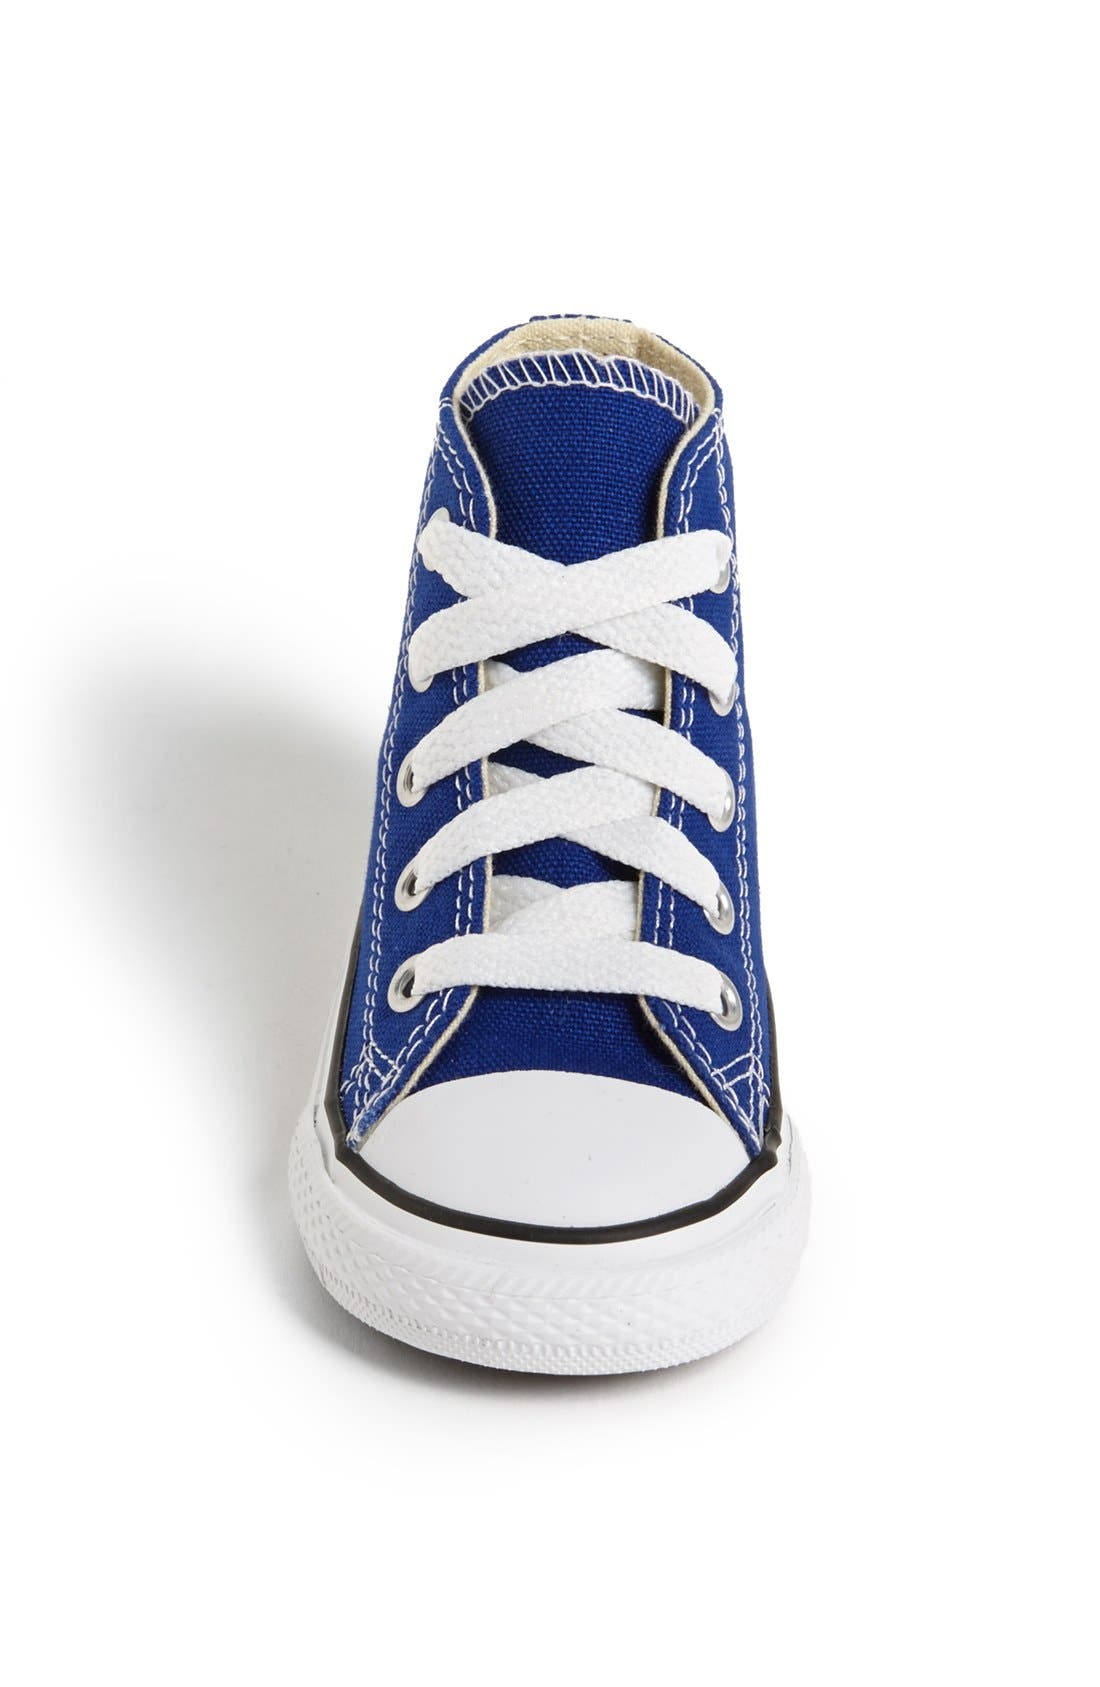 Alternate Image 3  - Converse Chuck Taylor® All Star® High Top Sneaker (Baby, Walker, Toddler & Little Kid)